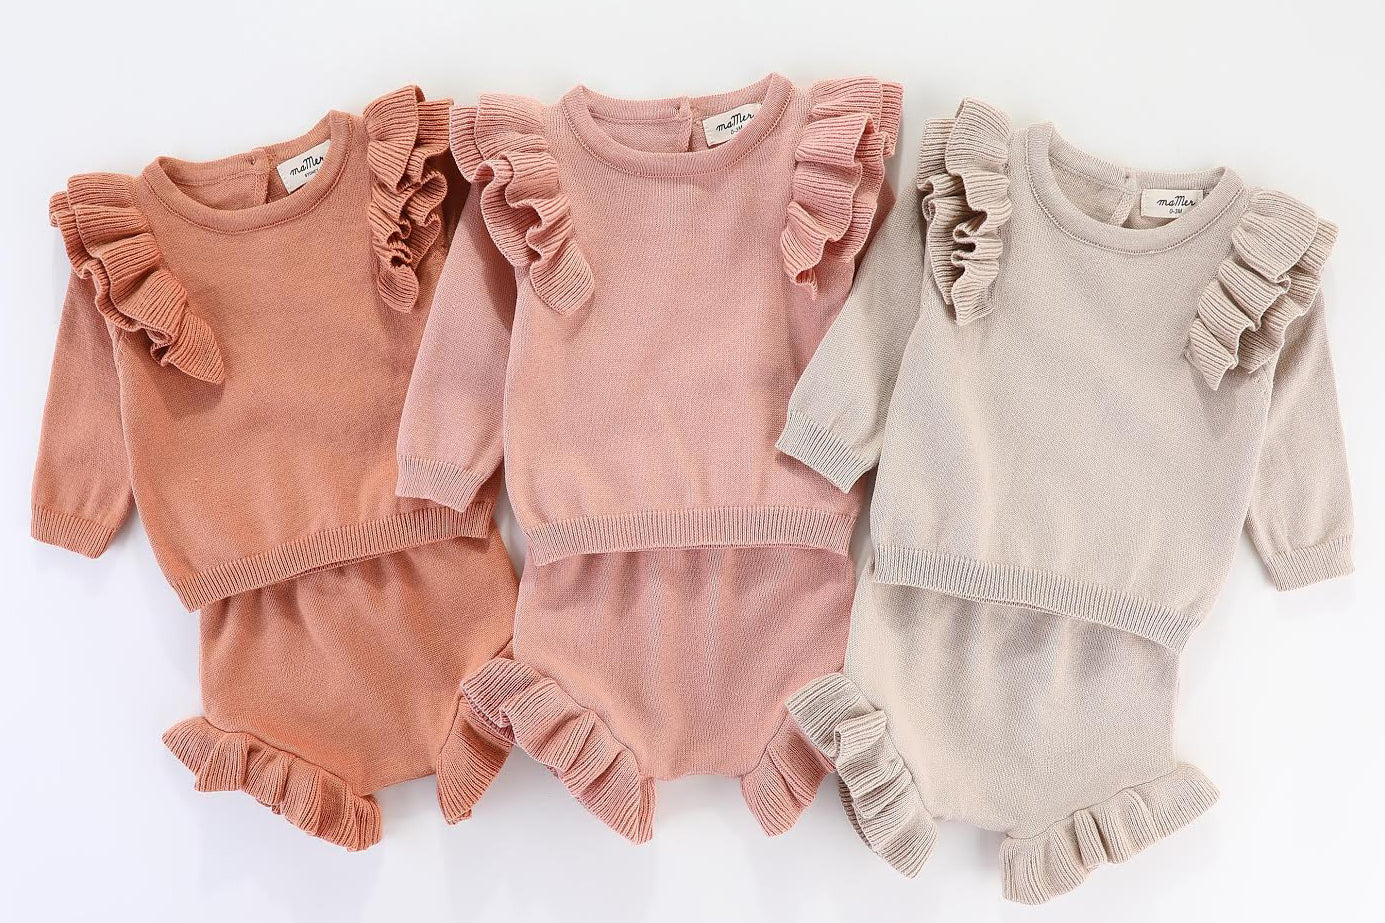 Gulia 2pcs Knitted Set: Jumper + bloomers: cream, peach, pink,